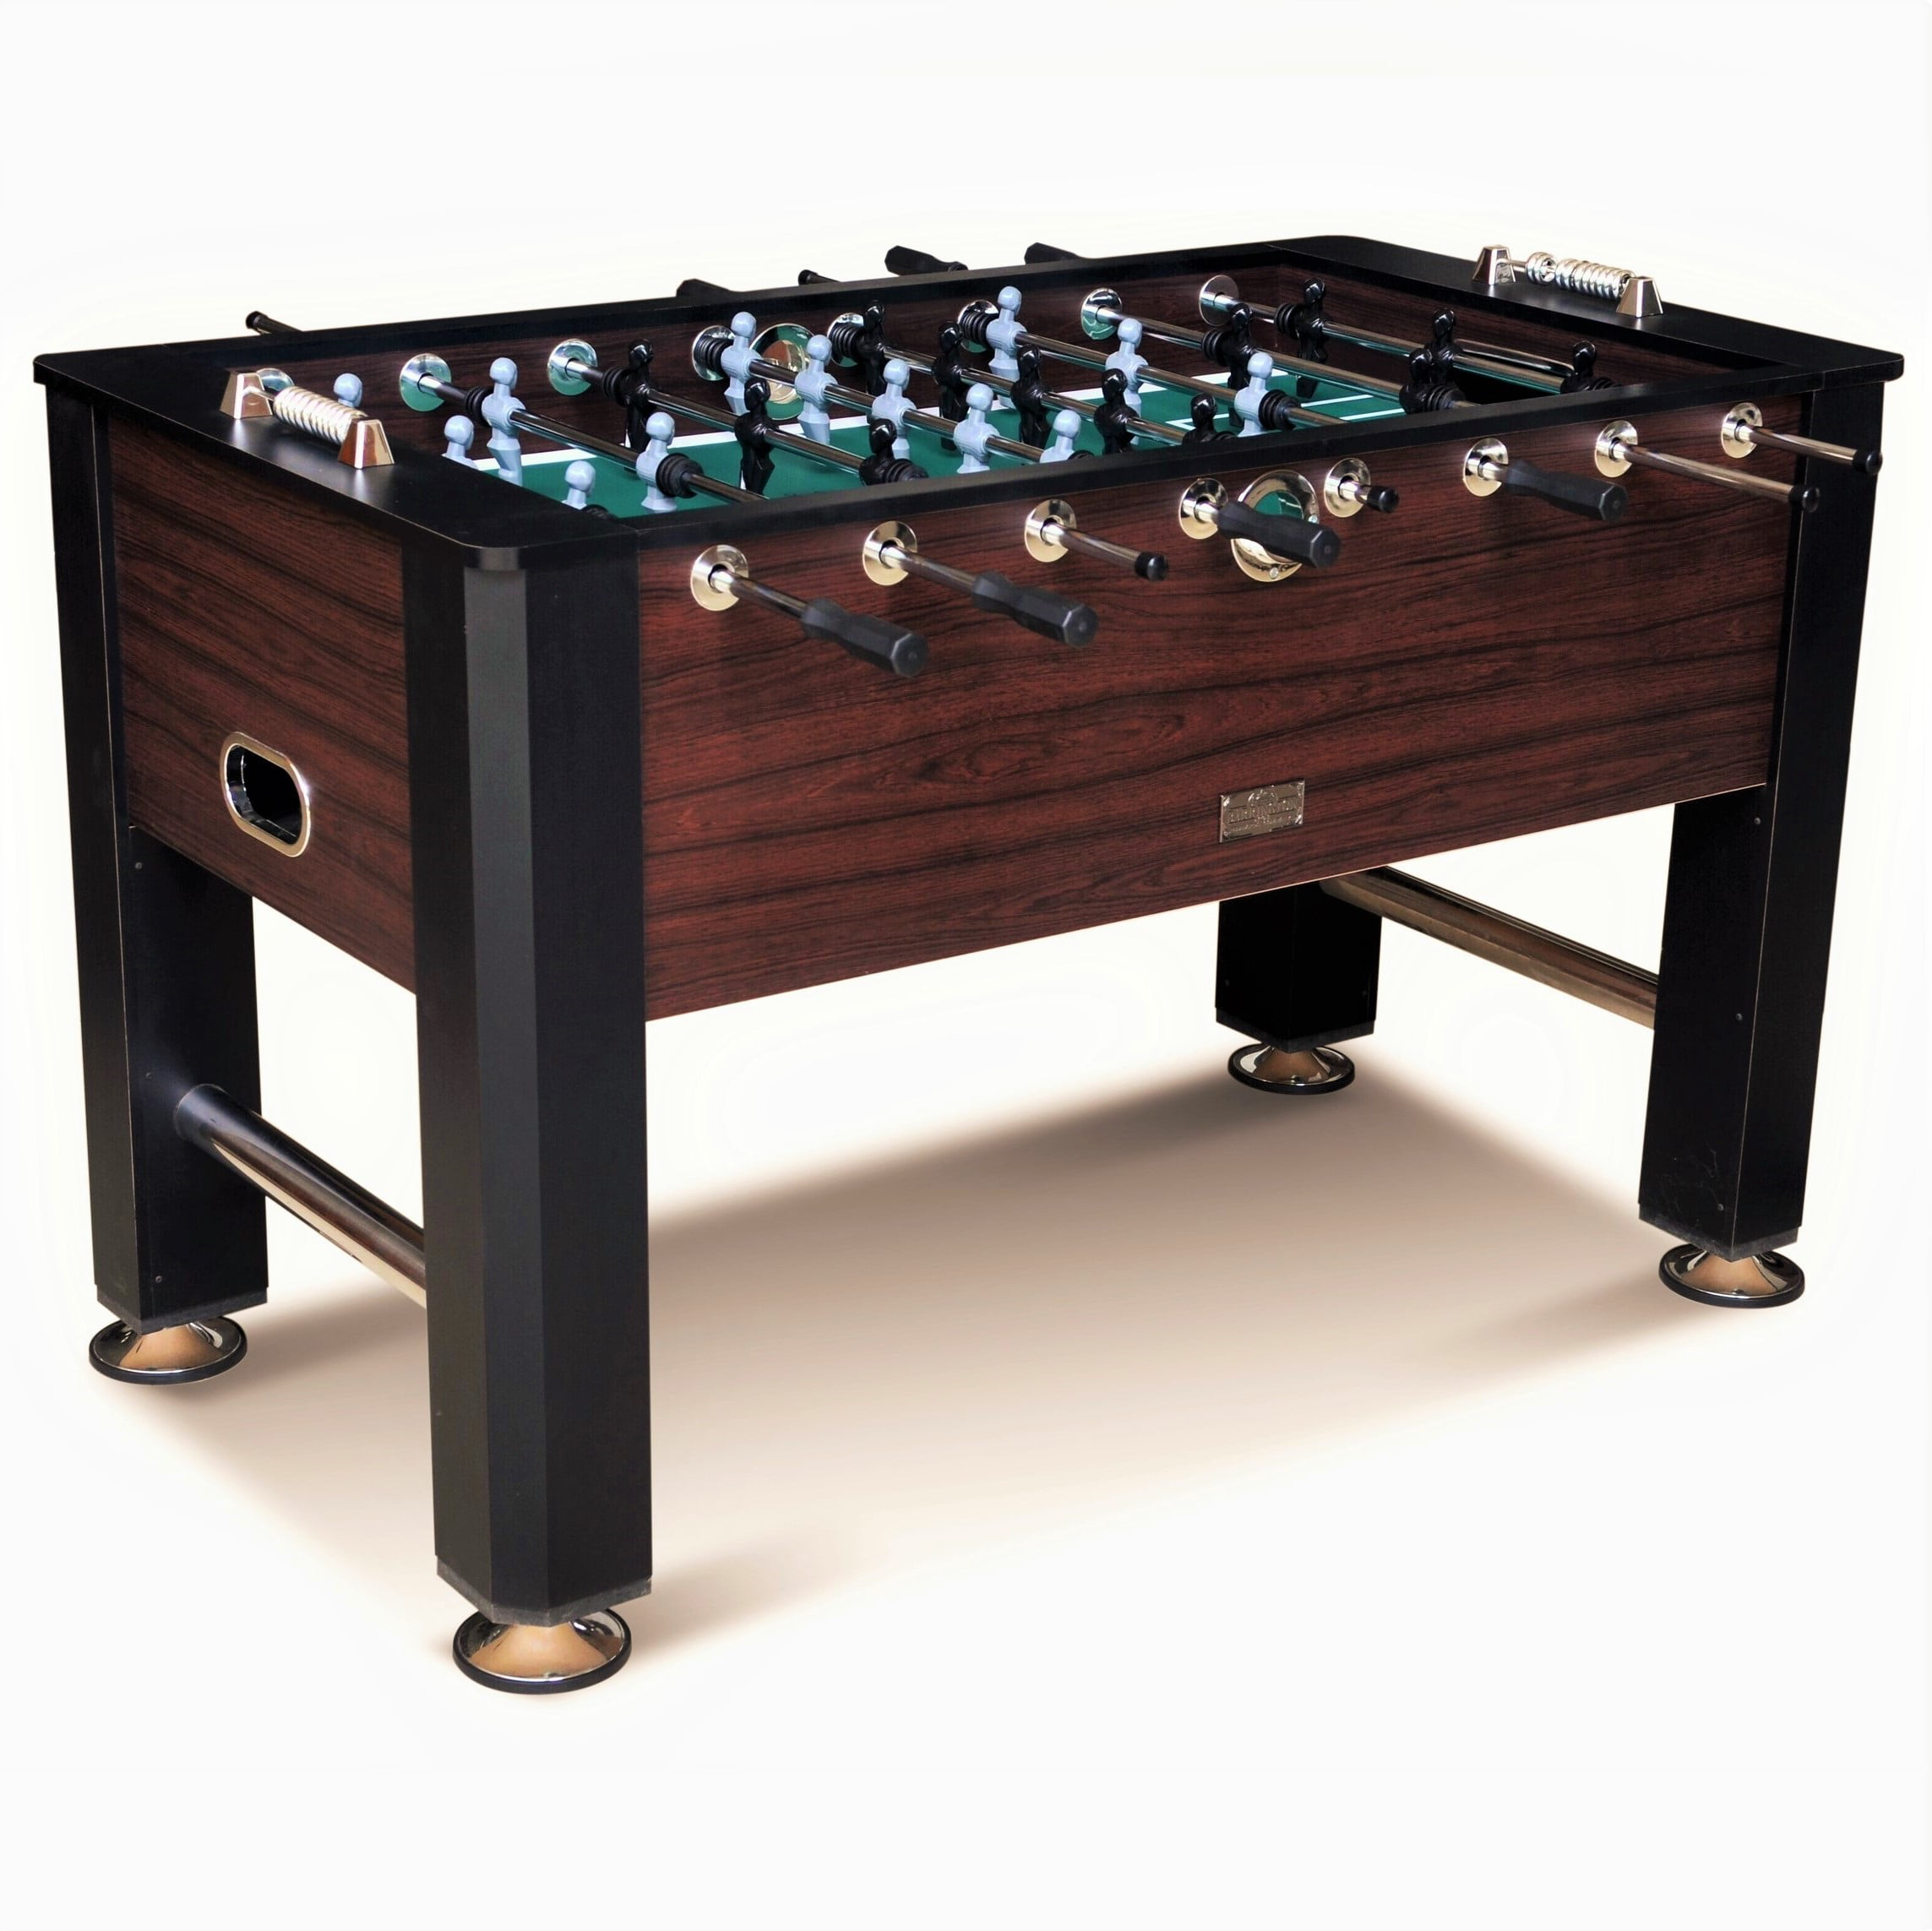 Barrington 56 Inch Premium Furniture Foosball Table Soccer Sy Leg Construction Black Brown